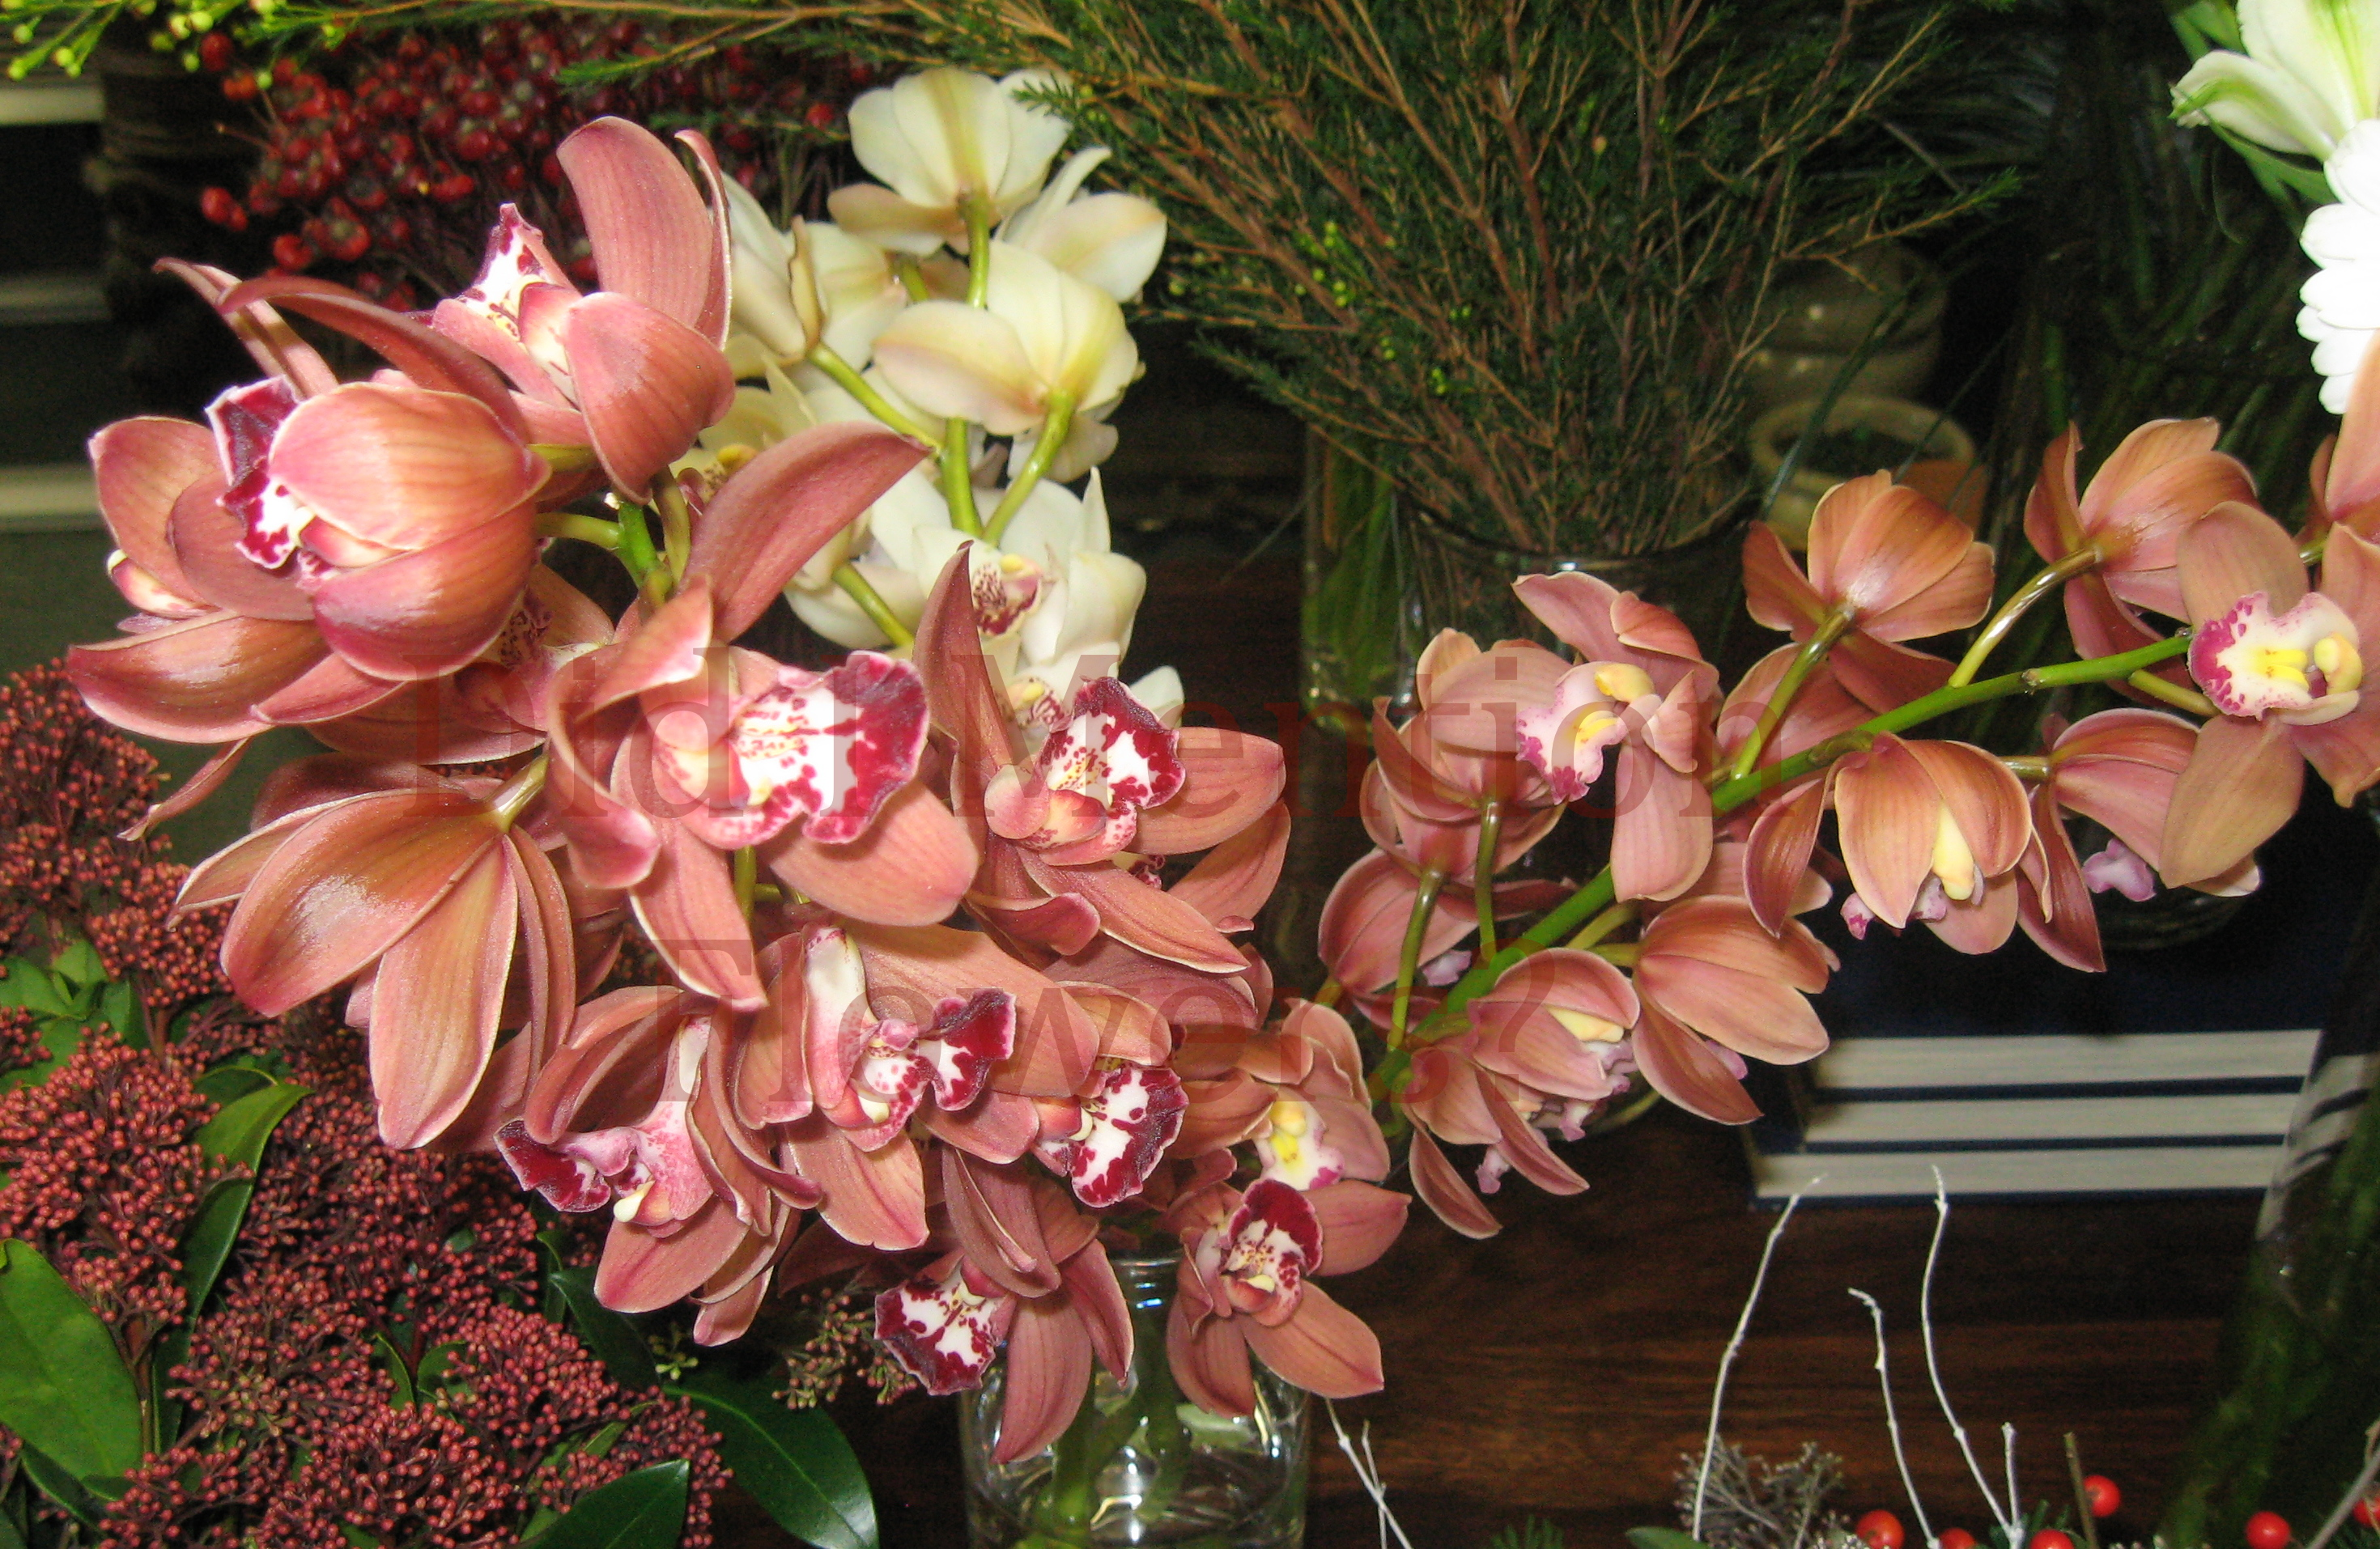 8 - Mini Cymbidium Orchids